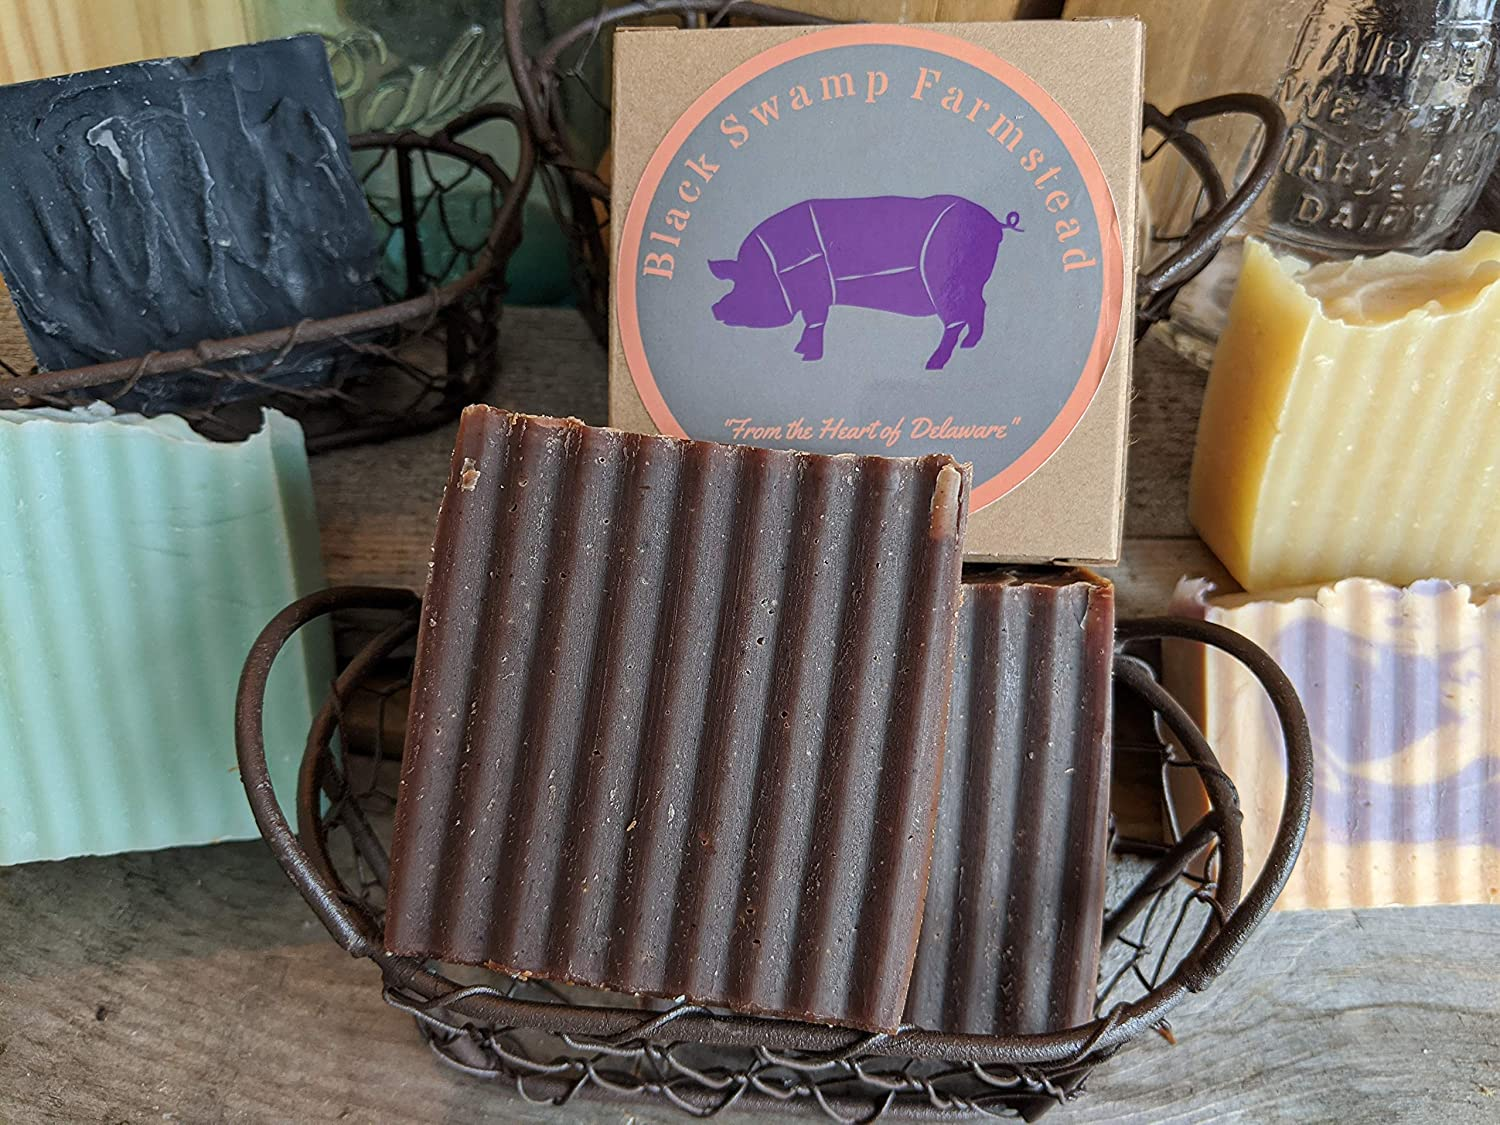 Chocolate Oatmeal Stout Moisturizing face and H Max 73% OFF body bar. hand High order